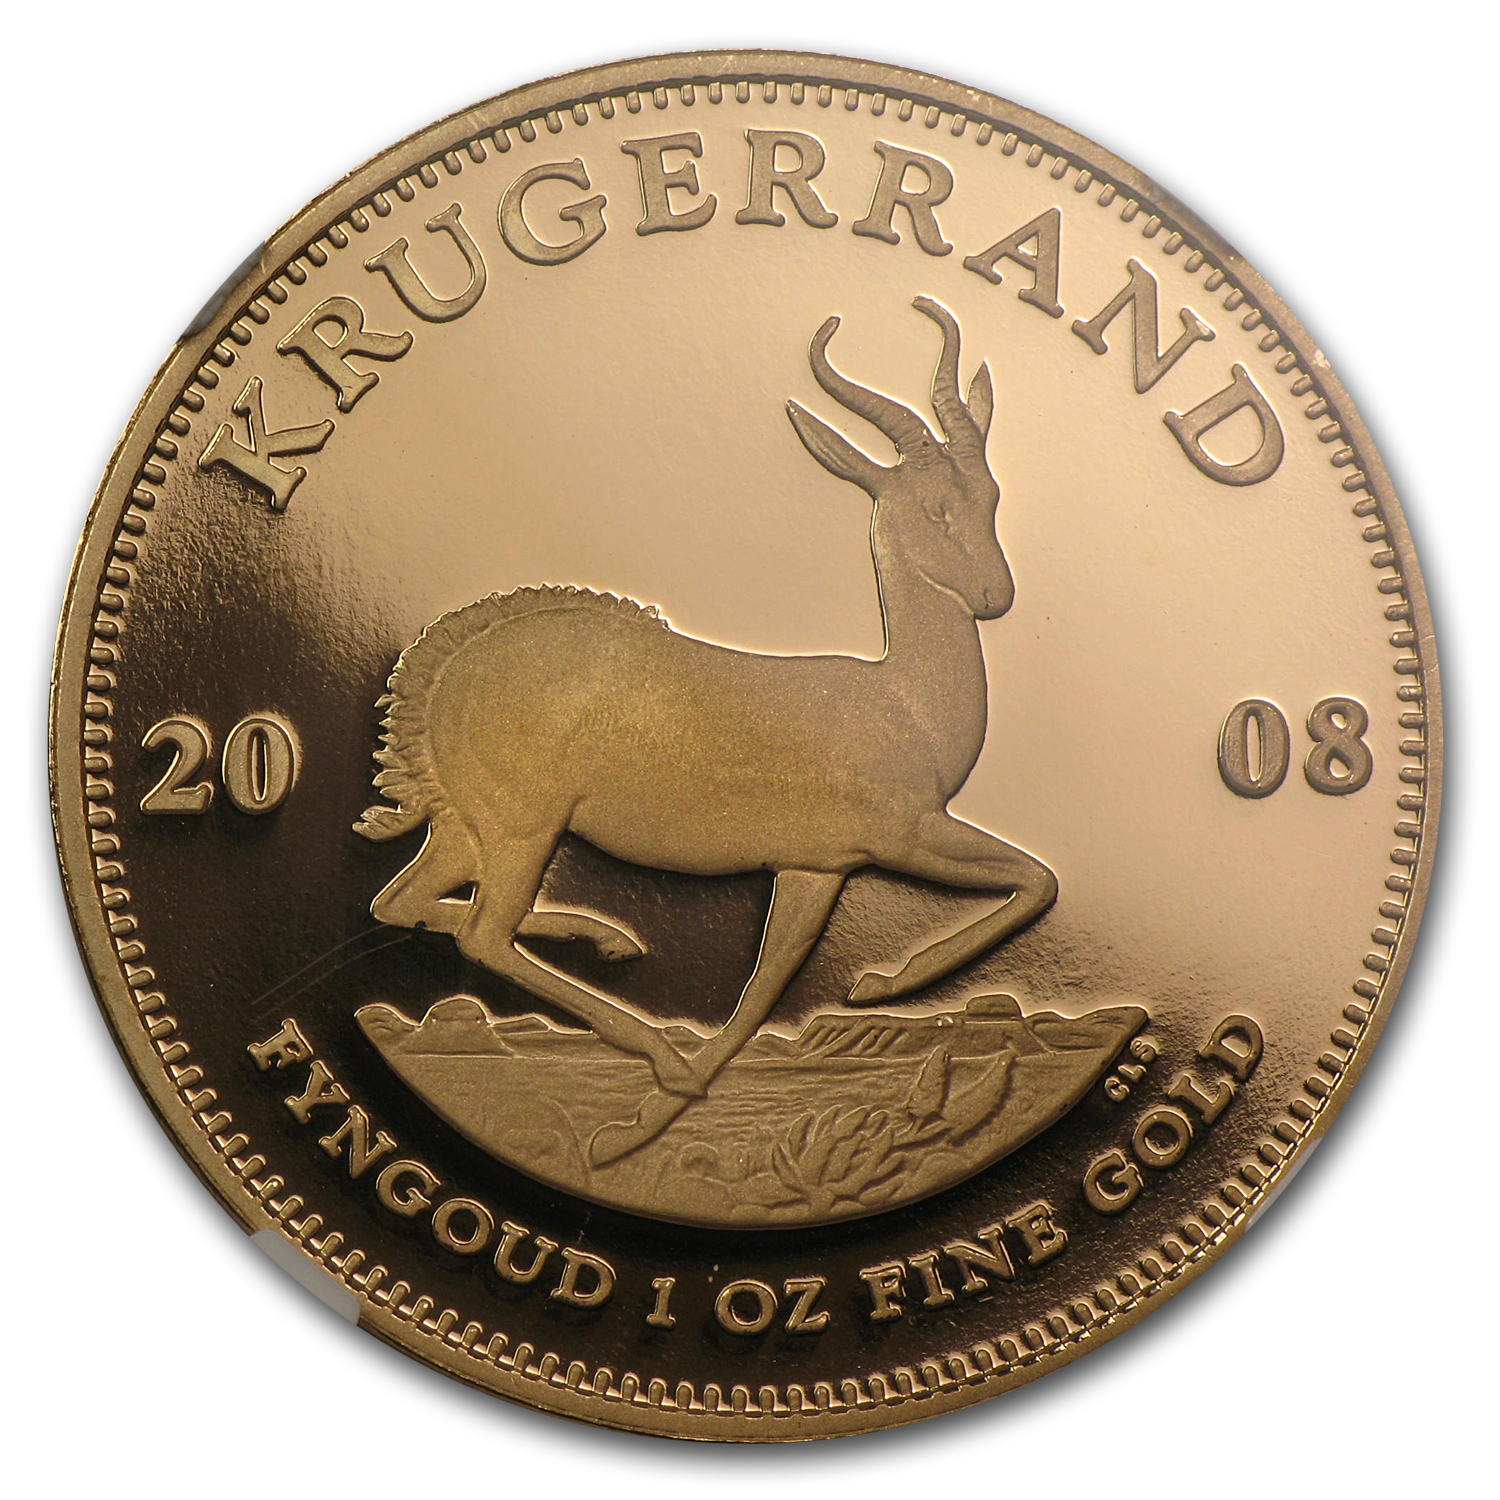 2008 South Africa 1 oz Gold Krugerrand PF-70 NGC